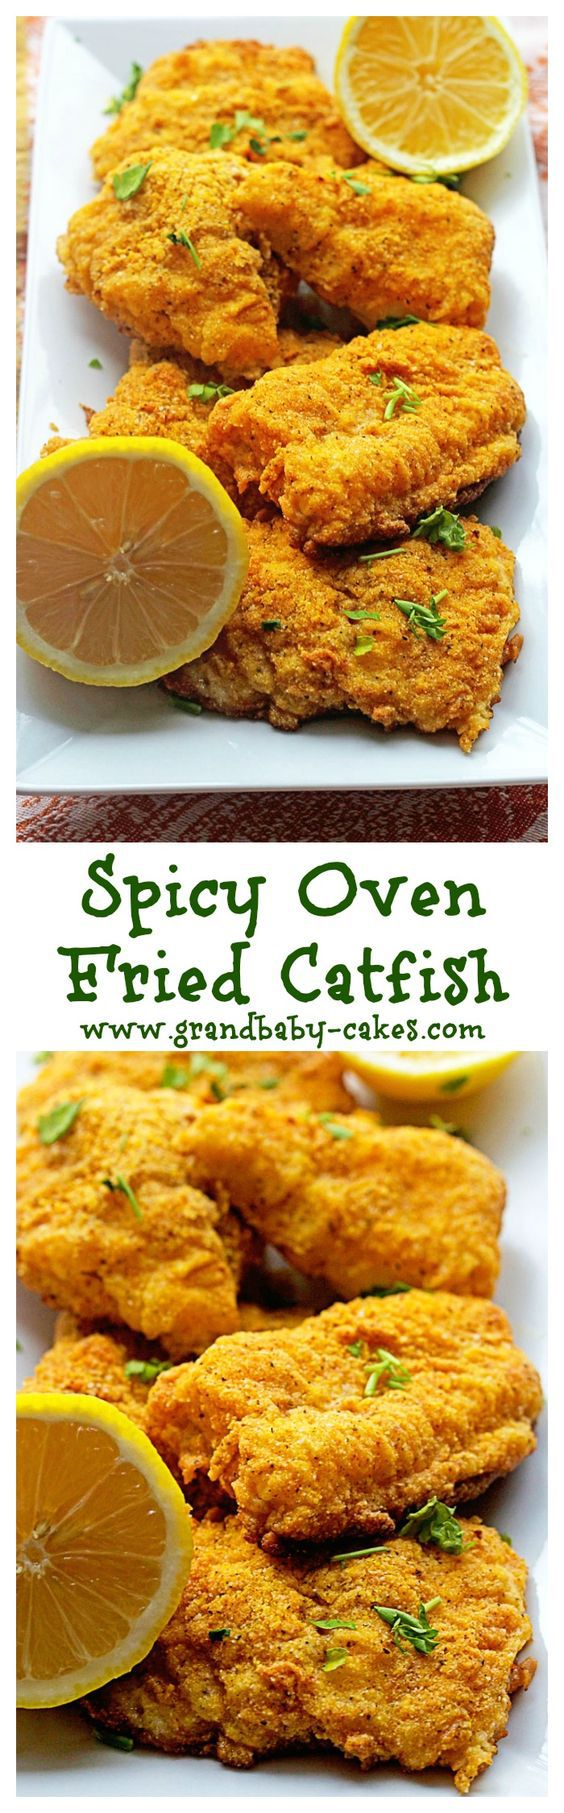 Spicy Oven Fried Catfish What's For Dinner? Fried